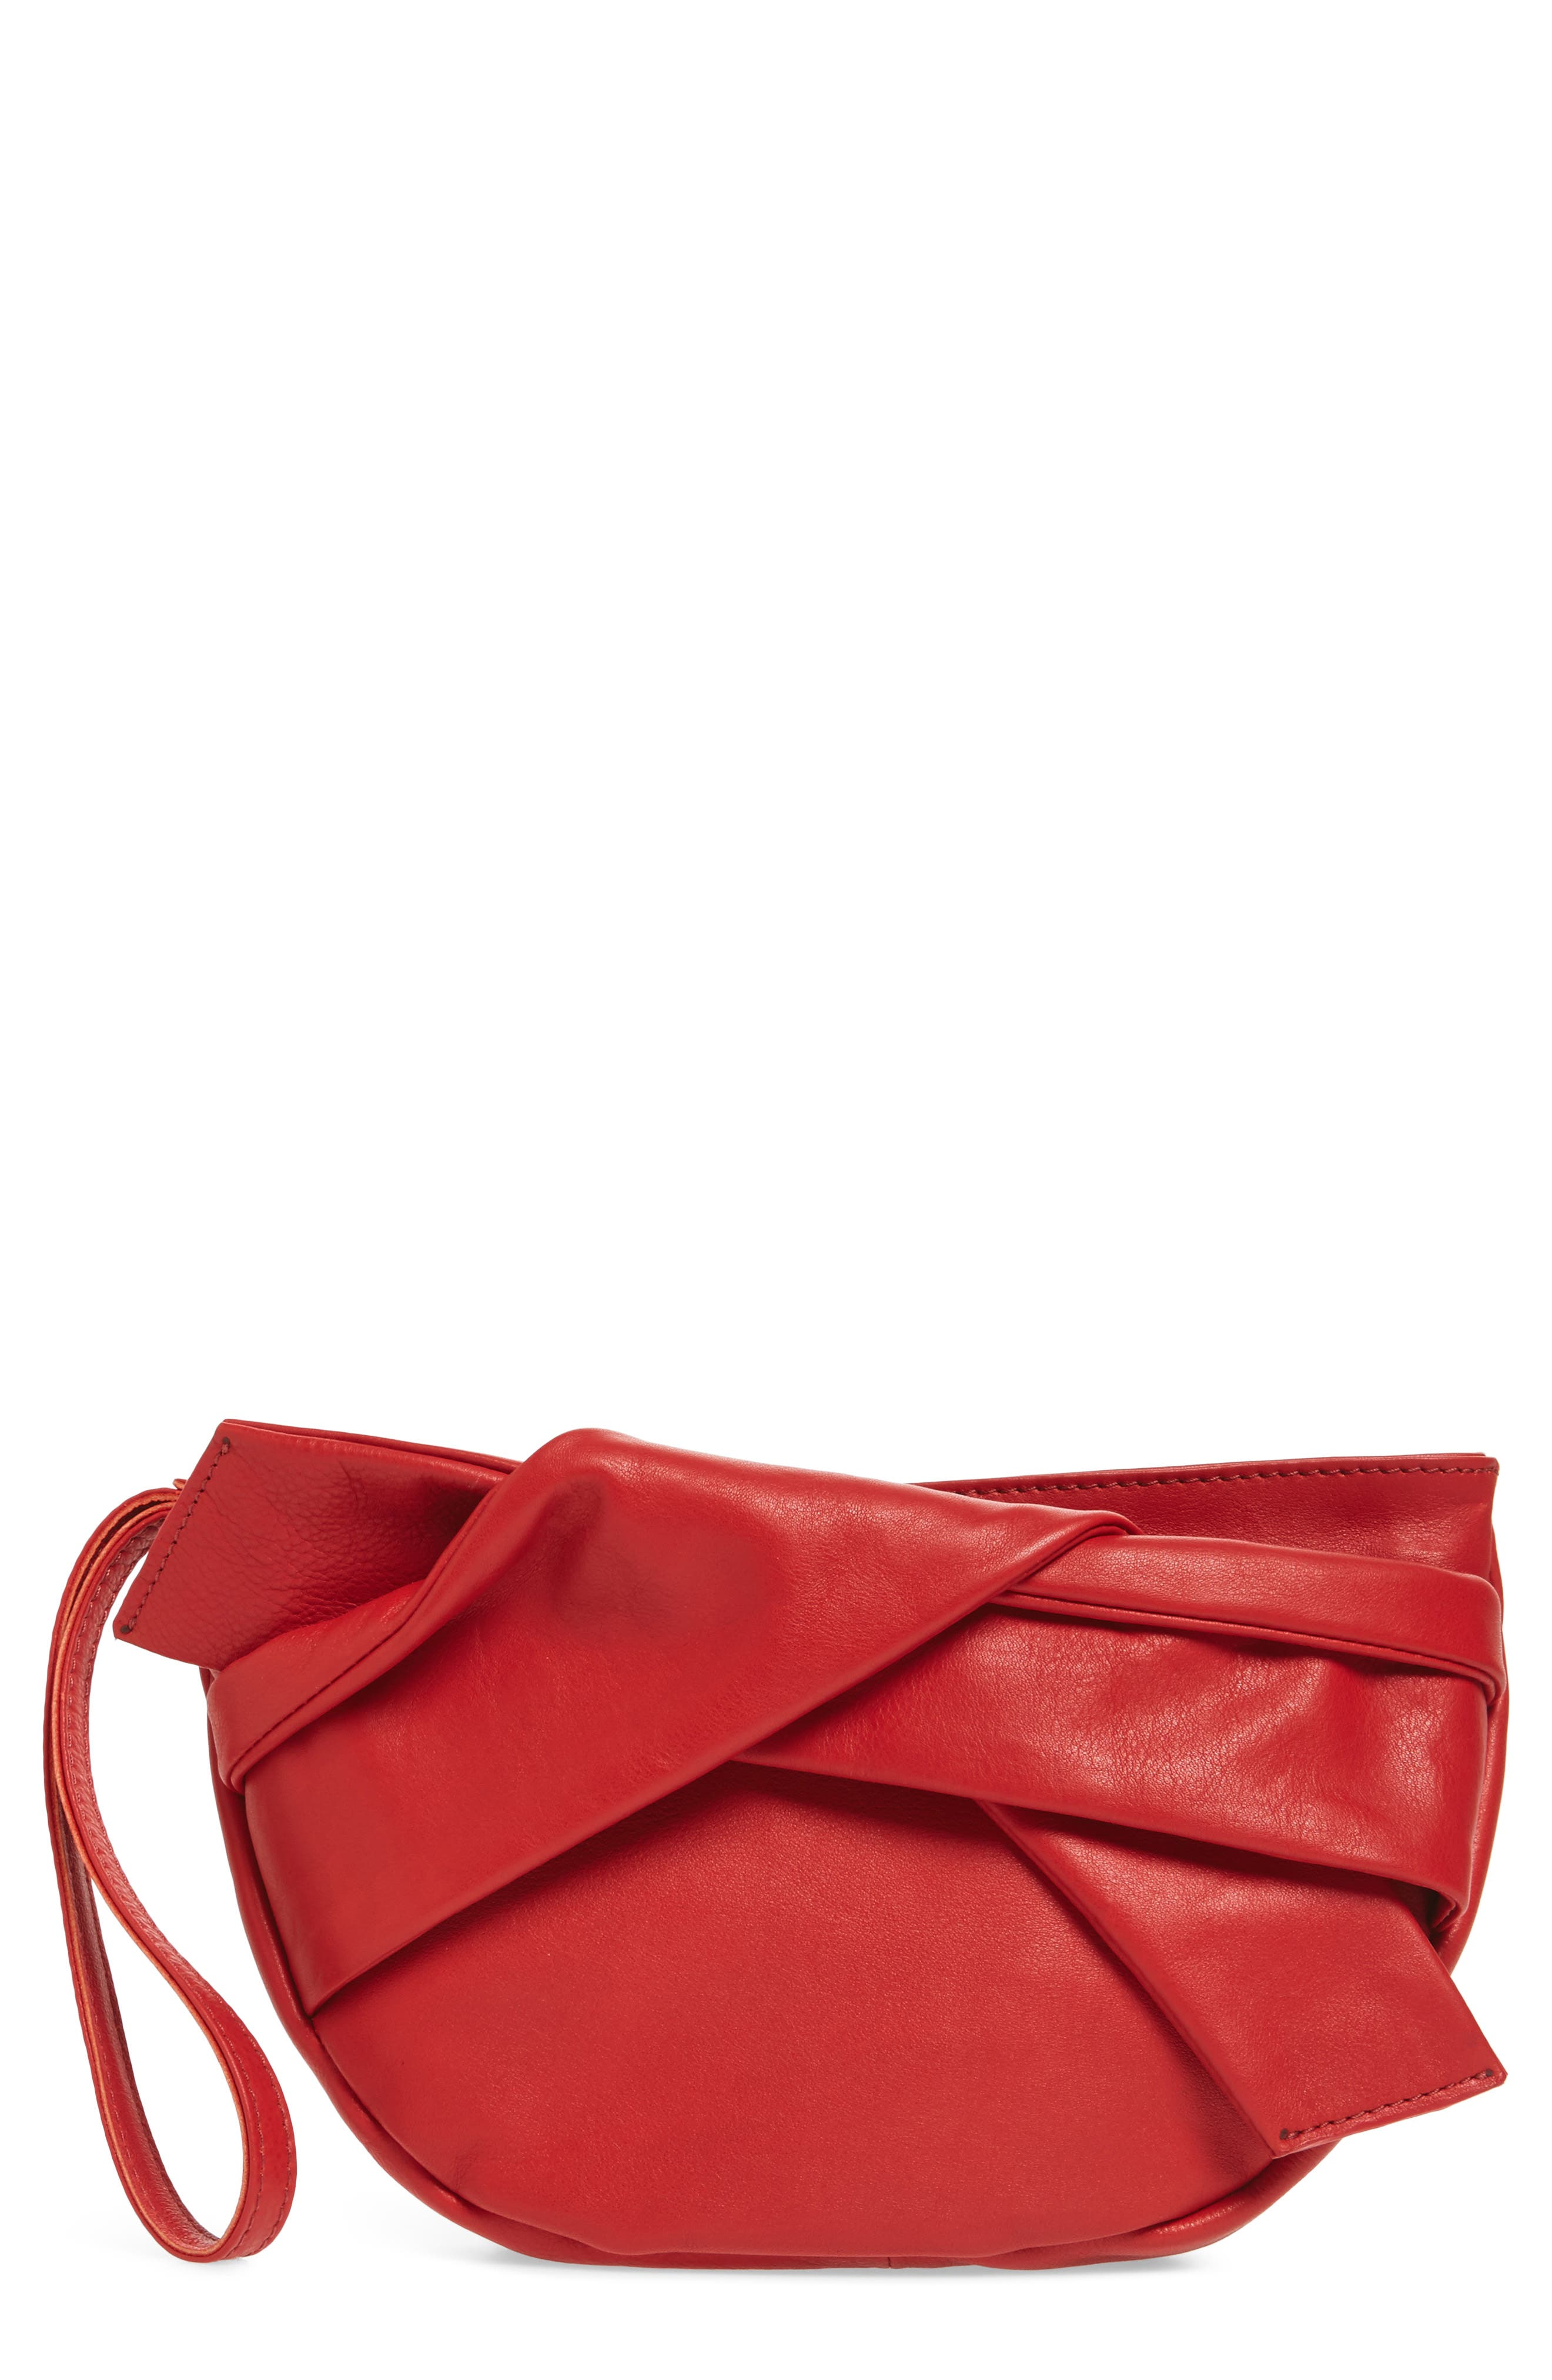 Jasmine Leather Clutch,                             Main thumbnail 2, color,